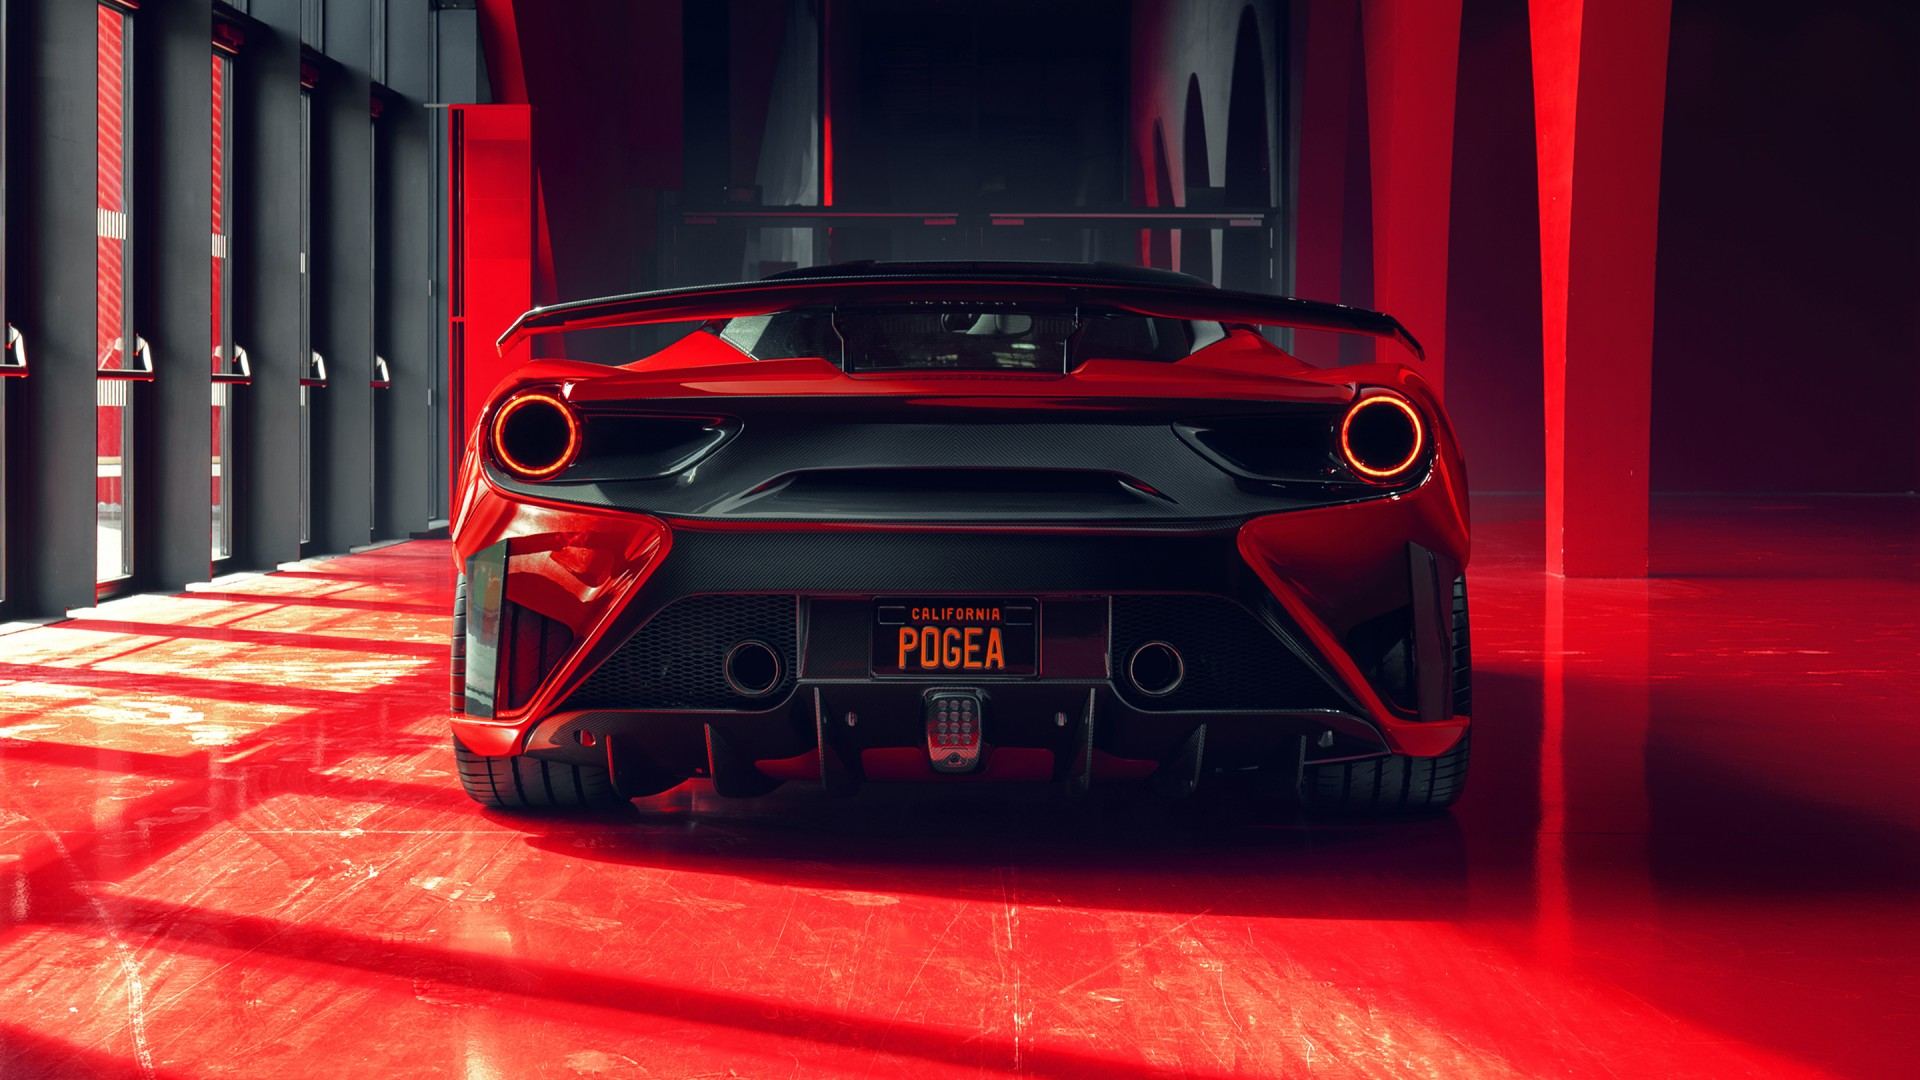 Audi Car Full Hd Wallpaper 2018 Pogea Racing Fplus Corsa Ferrari 488 Gtb 2 Wallpaper